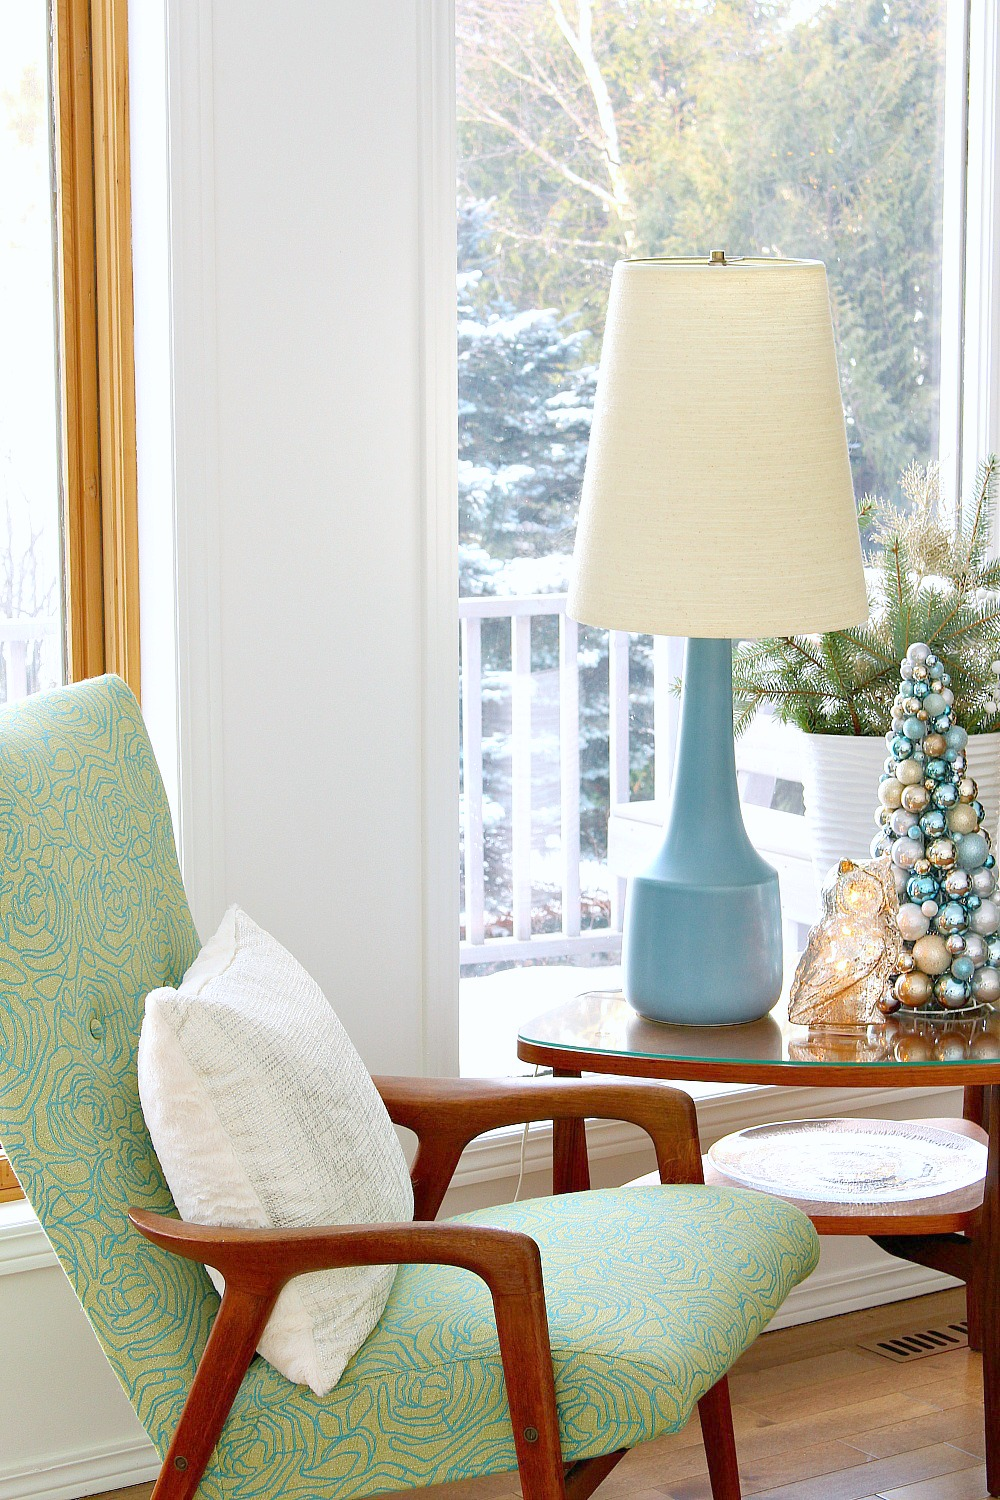 Wintry Blue and White Holiday Decorating Ideas